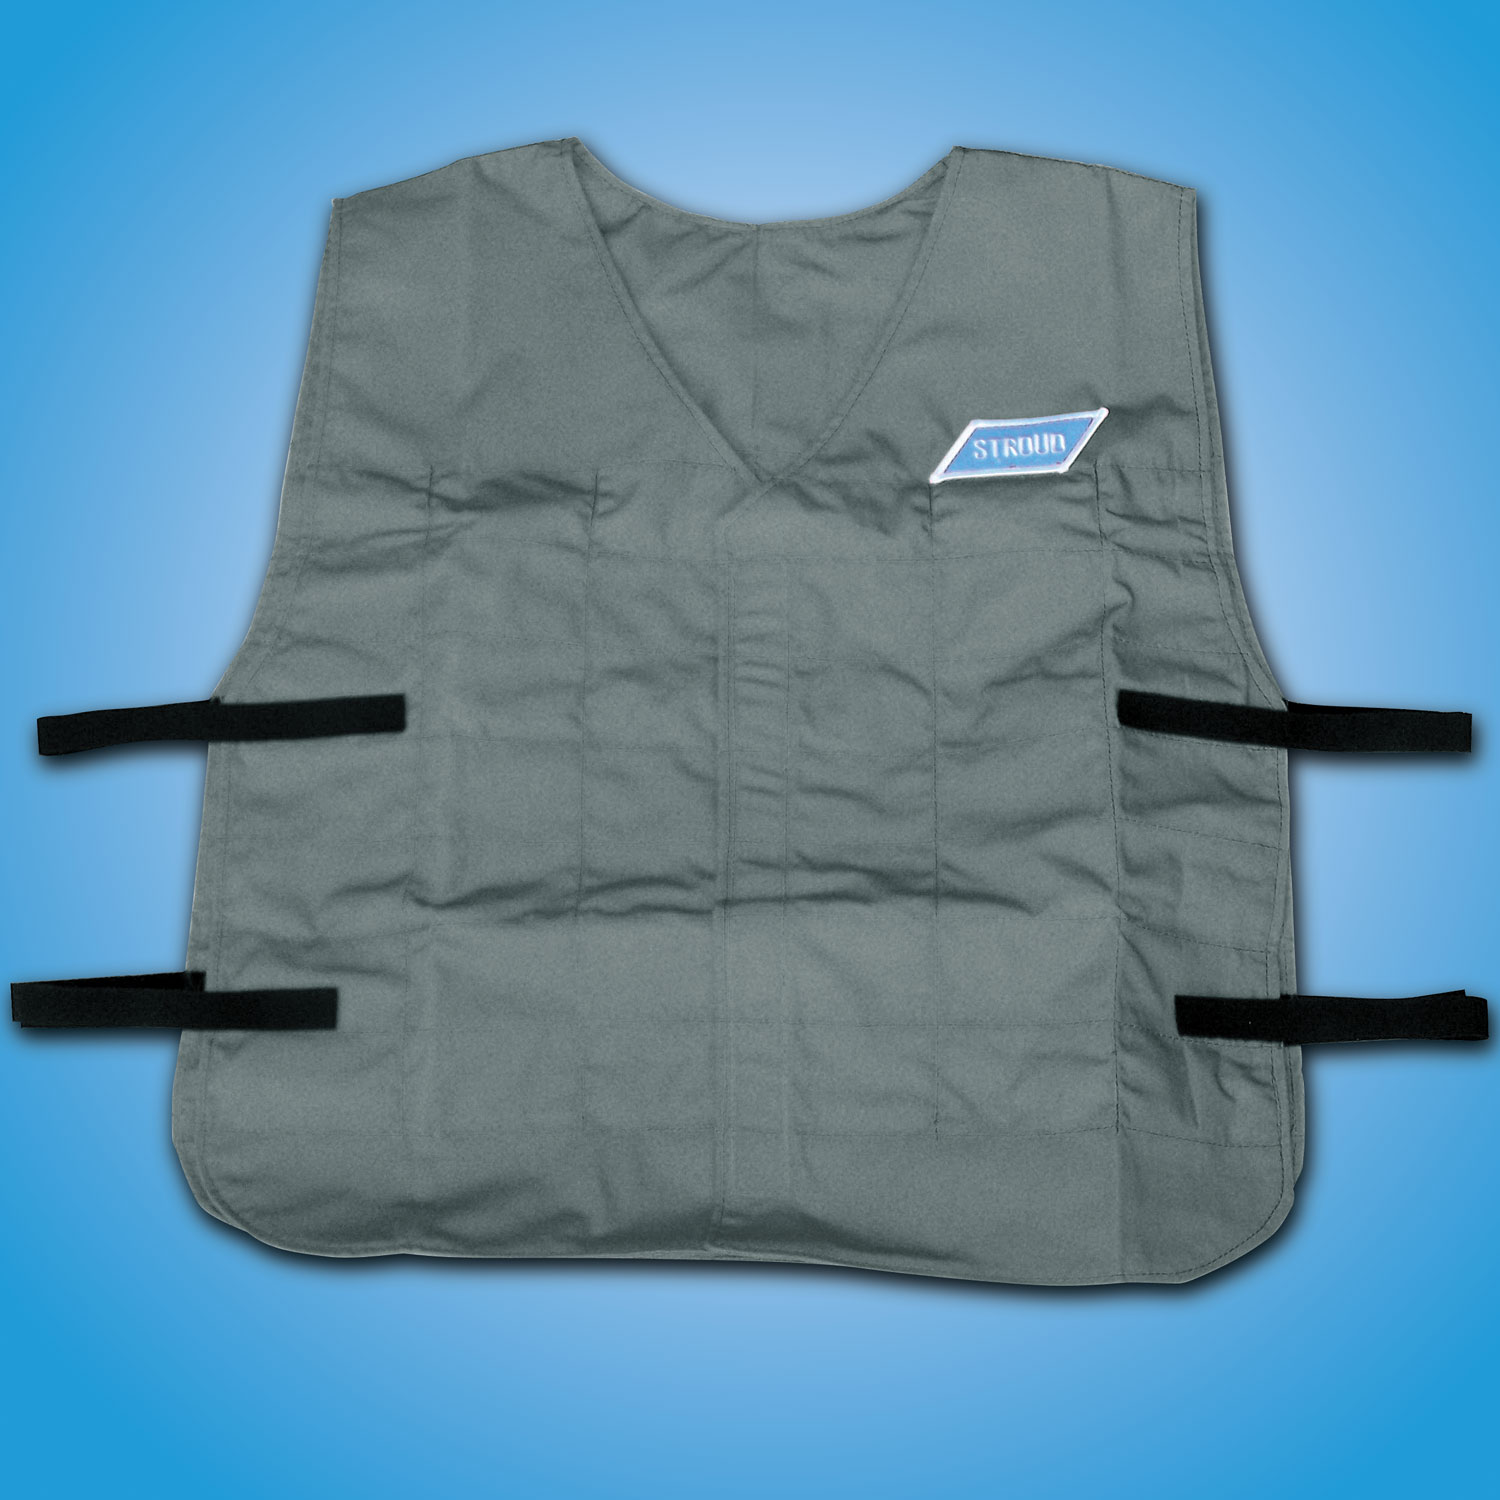 COOL VEST   For those hot summer days when you feel like melting, the Stroud cool vest cures the heat. Reusable all day and does not interfere with your driving. Also keeps you warm in the winter!  Part #810 — $110